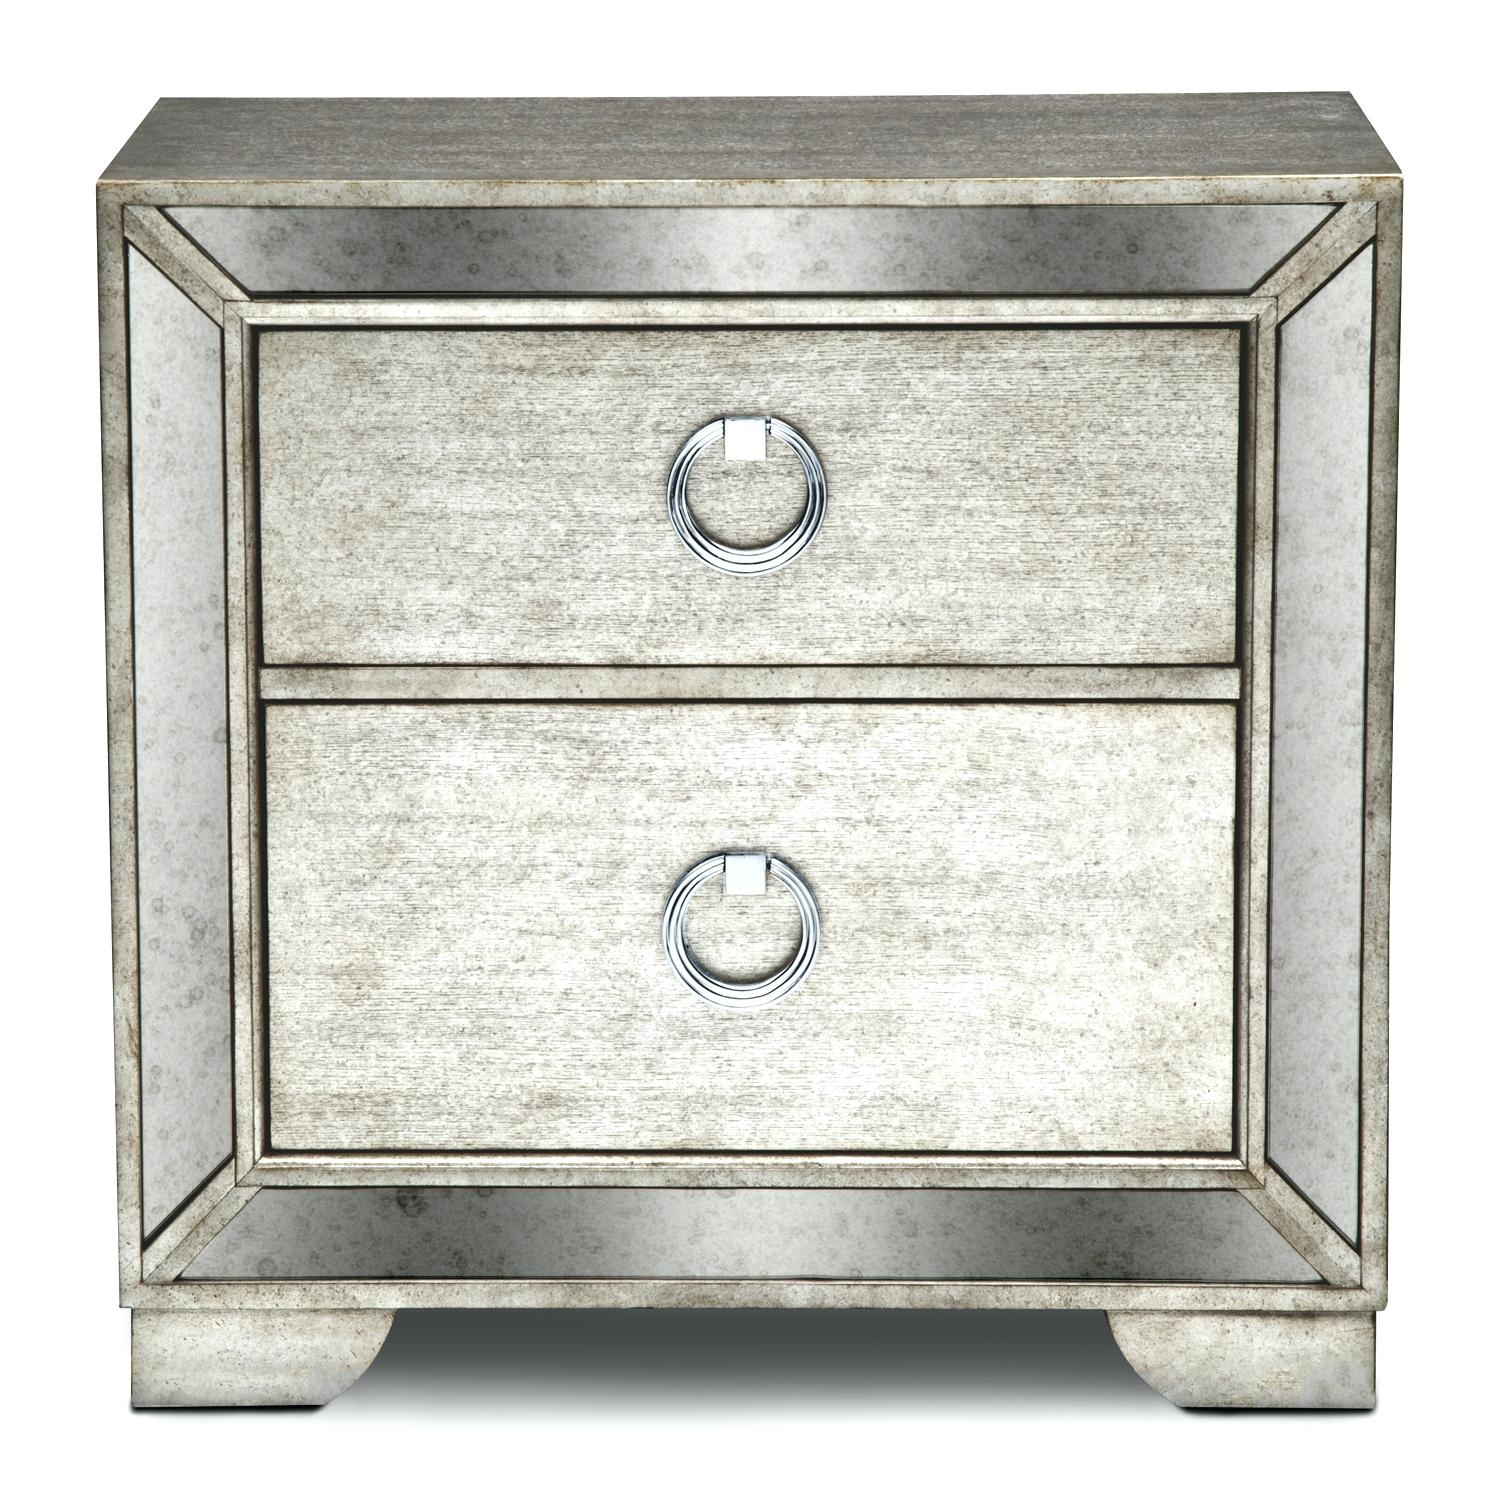 Unusual Shaped Mirror Silver Nightstand Mirrored Nighstands With Regarding Unusual Shaped Mirrors (Image 15 of 15)